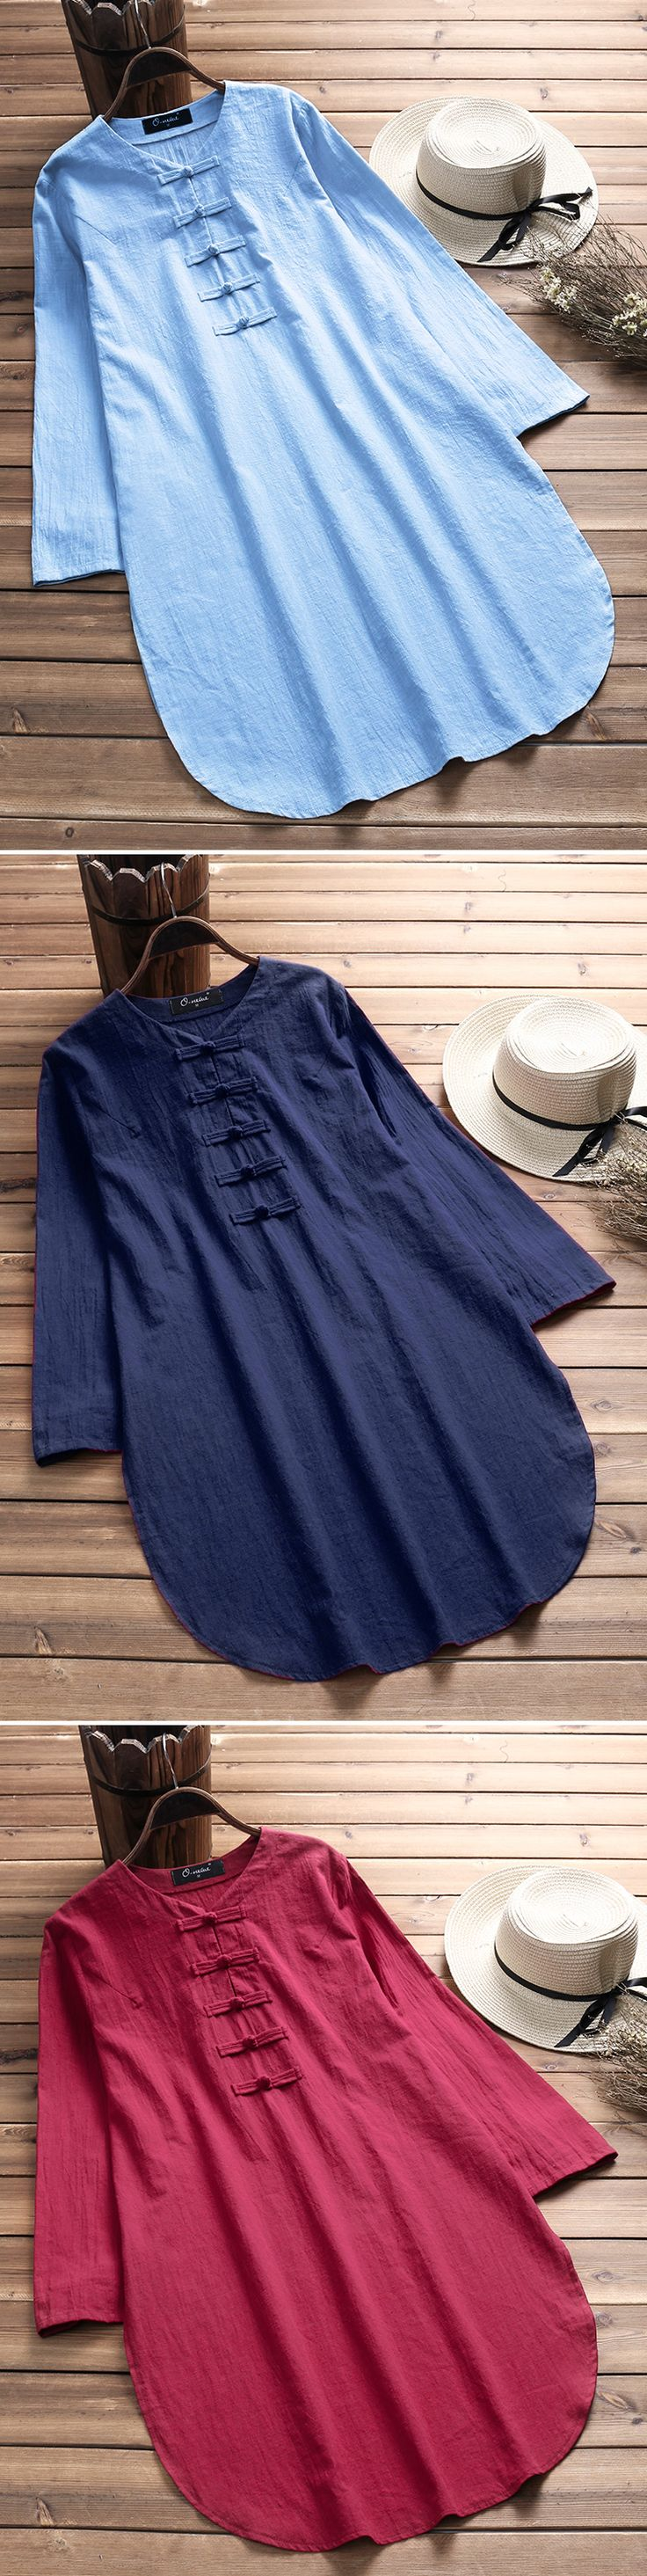 best clothing images on pinterest blouses clothes and